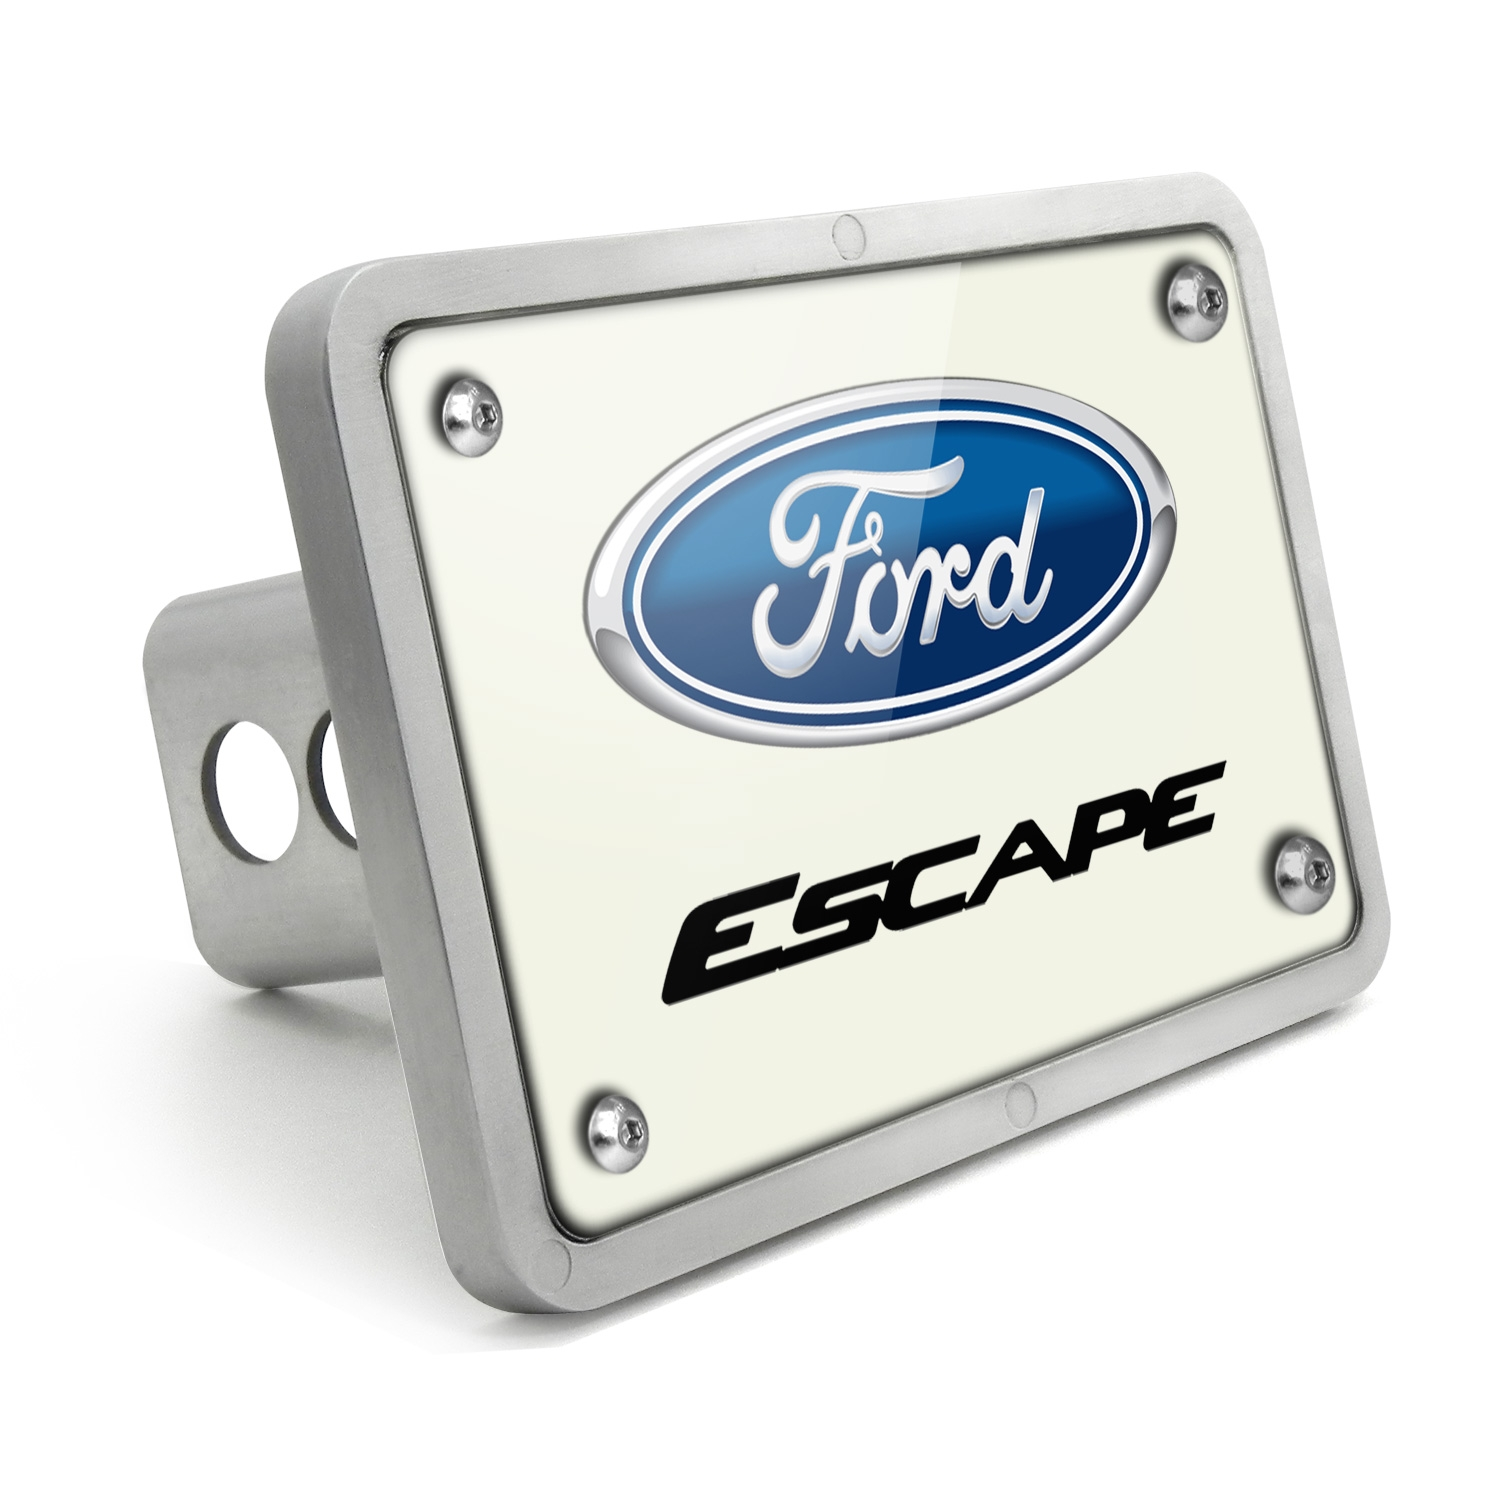 Ford Escape UV Graphic White Plate Billet Aluminum 2 inch Tow Hitch Cover